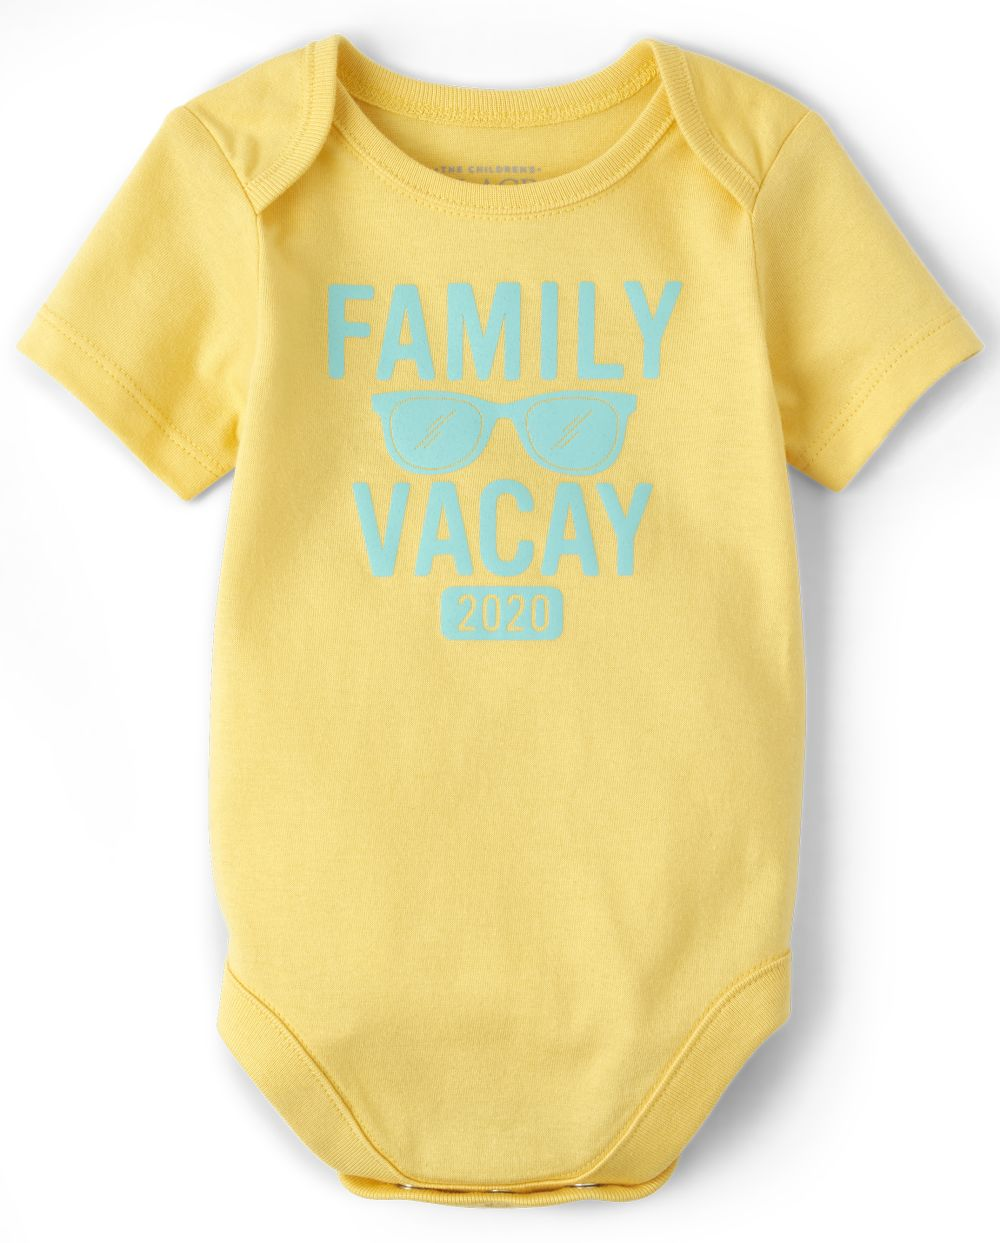 Unisex Baby Matching Family Vacay 2020 Graphic Bodysuit